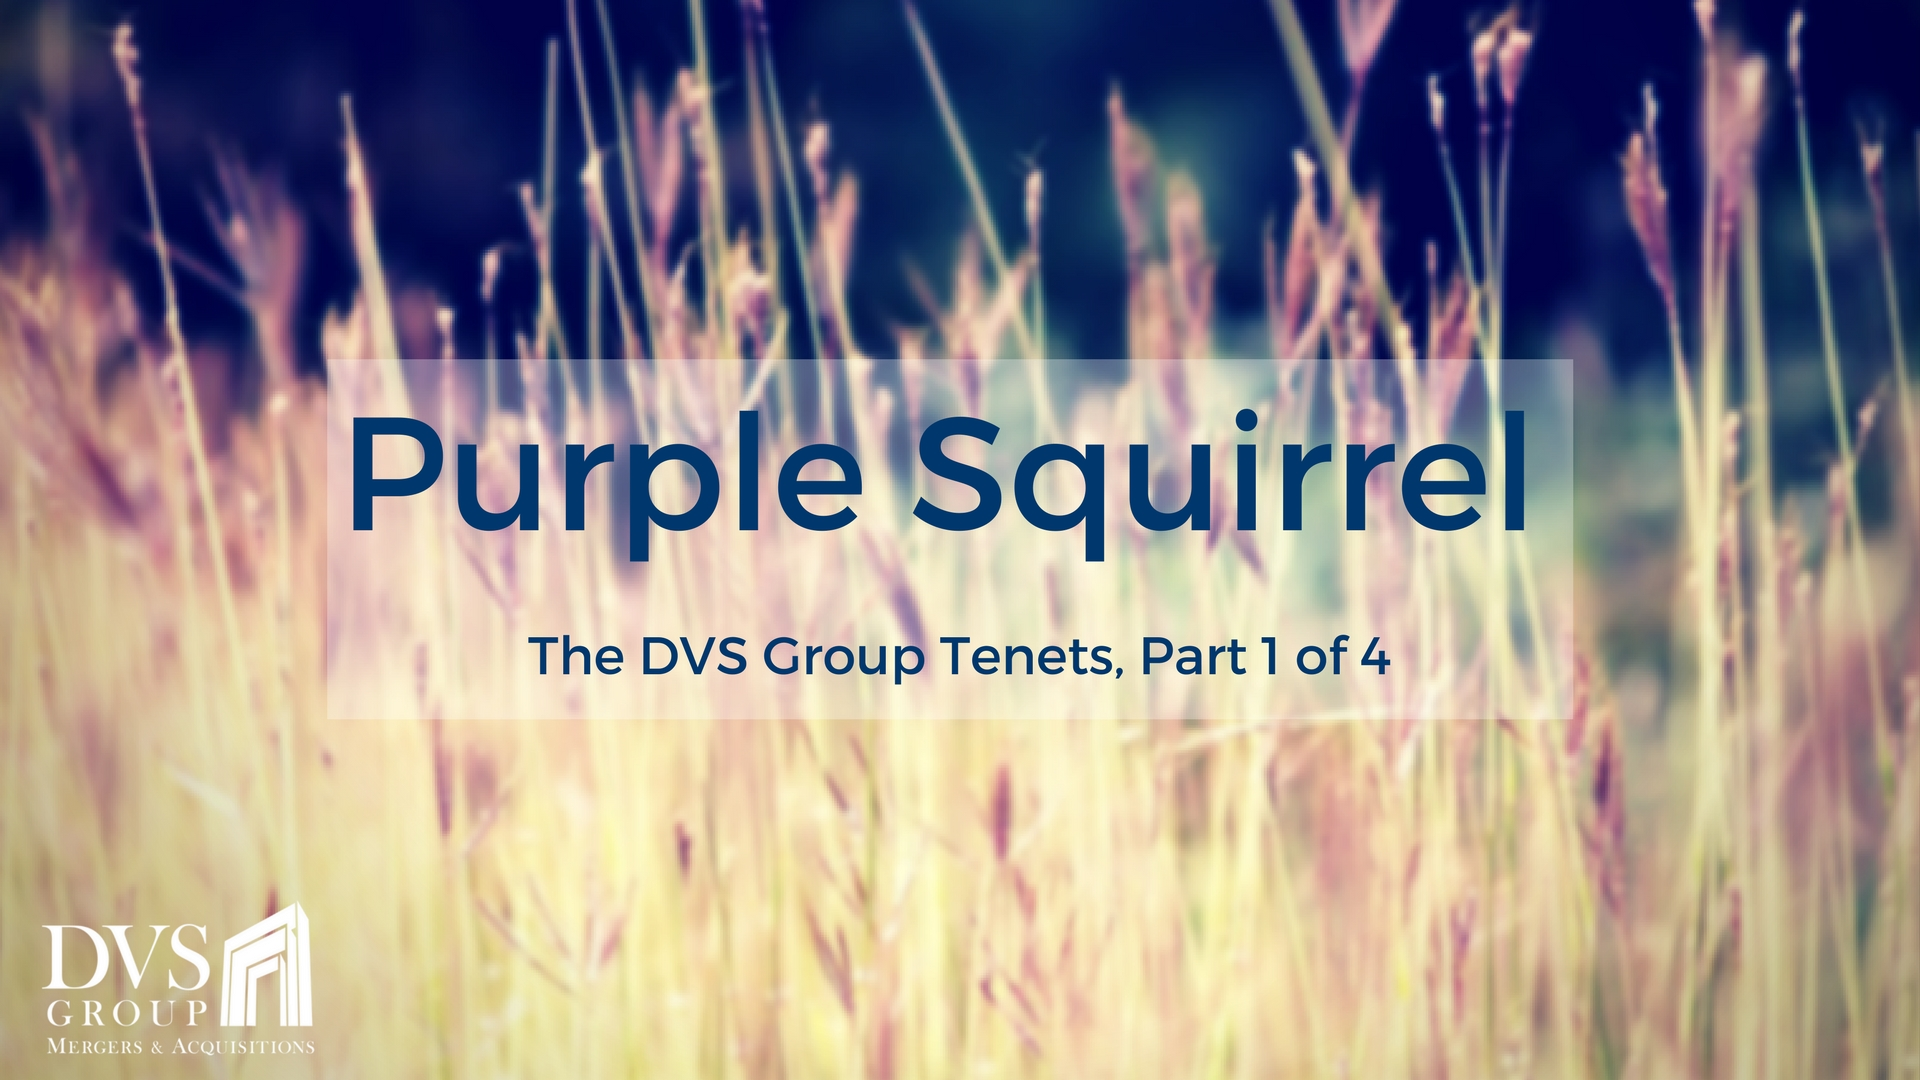 The DVS Group Tenets - Purple Squirrel